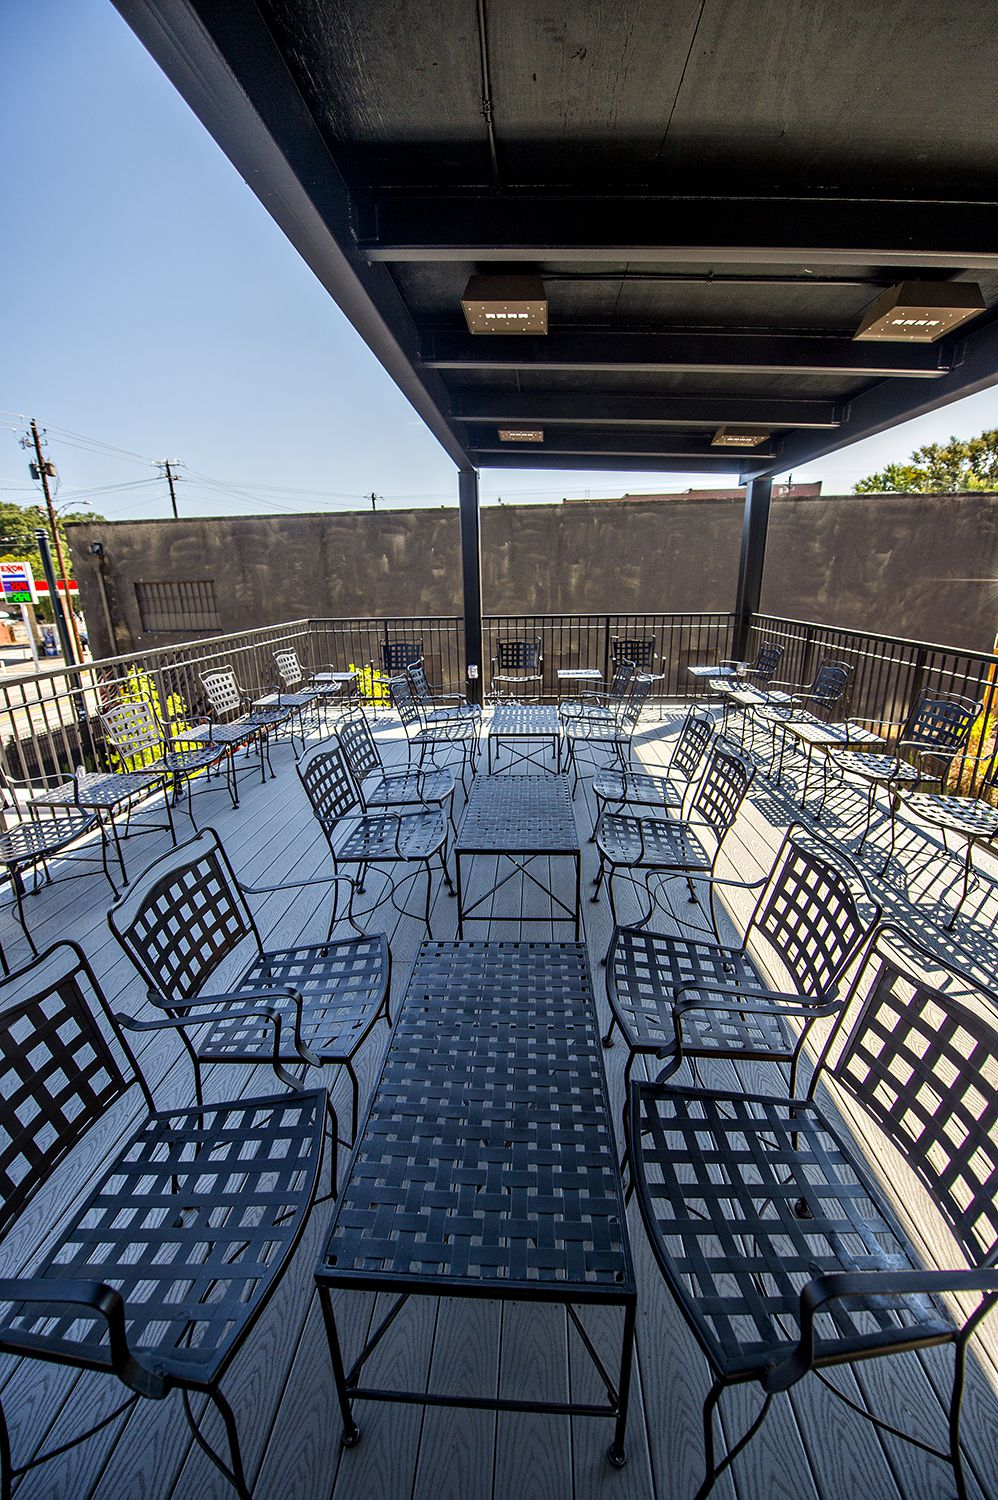 The rooftop patio at Cafe + Velo.